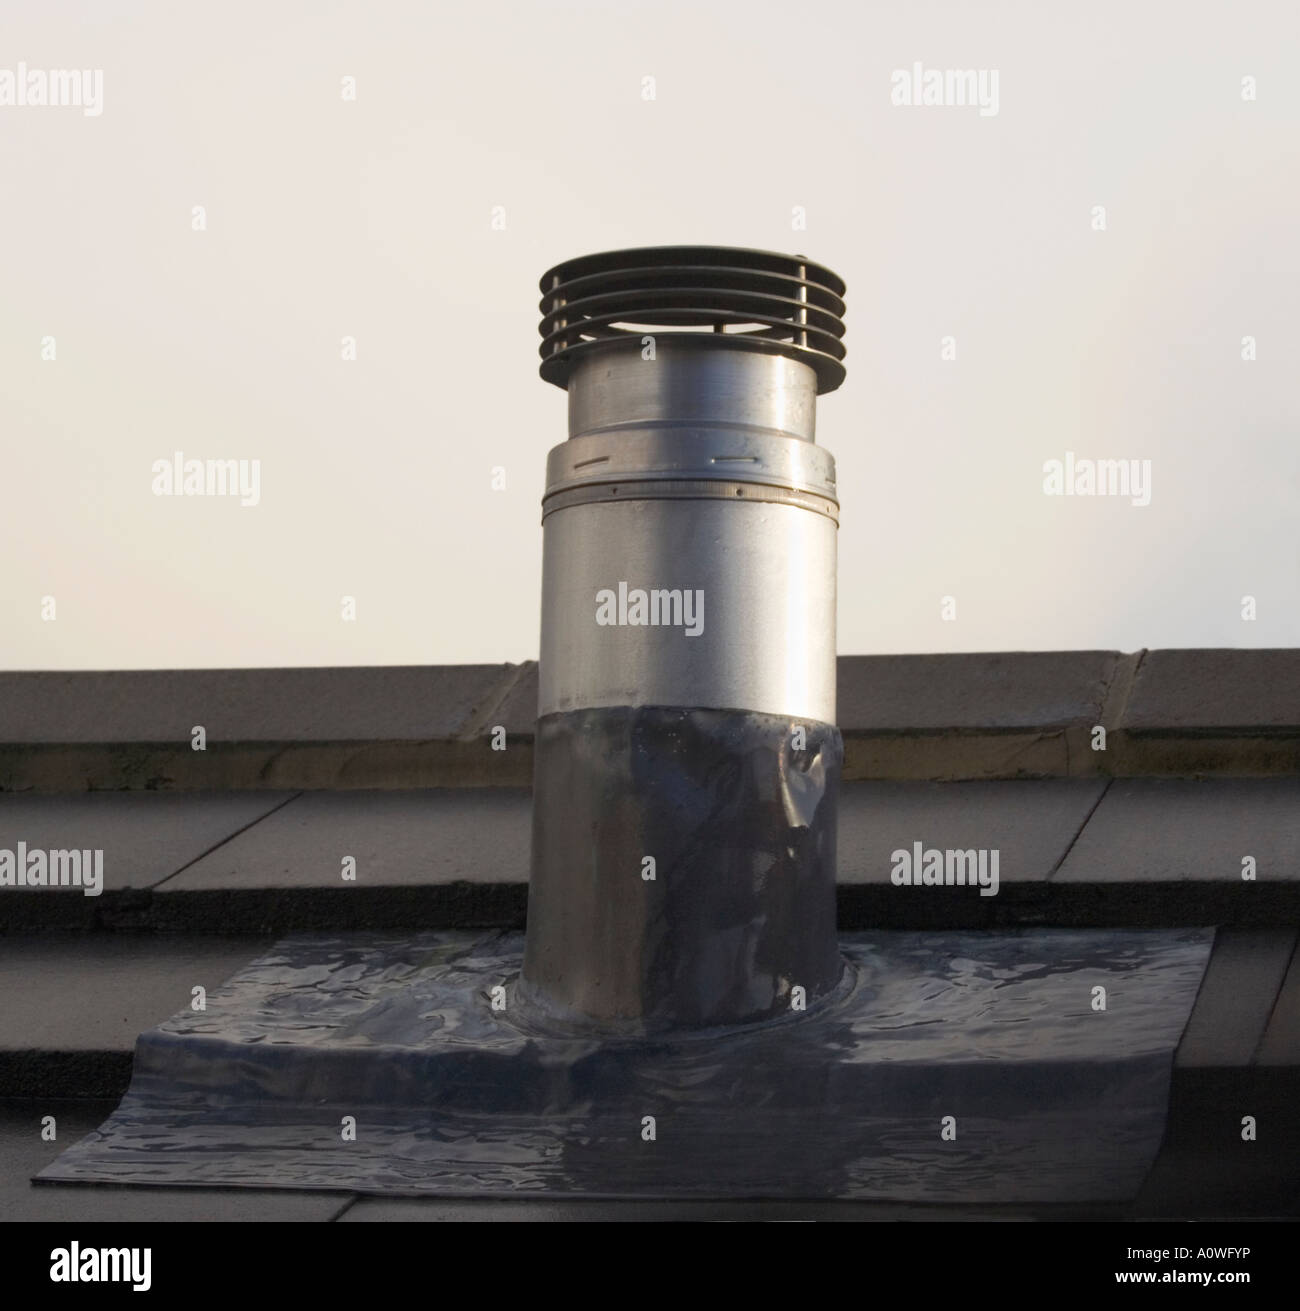 https www alamy com stock photo chimney flue on a roof metal pipe roof tiles lead flashing uk 10075065 html